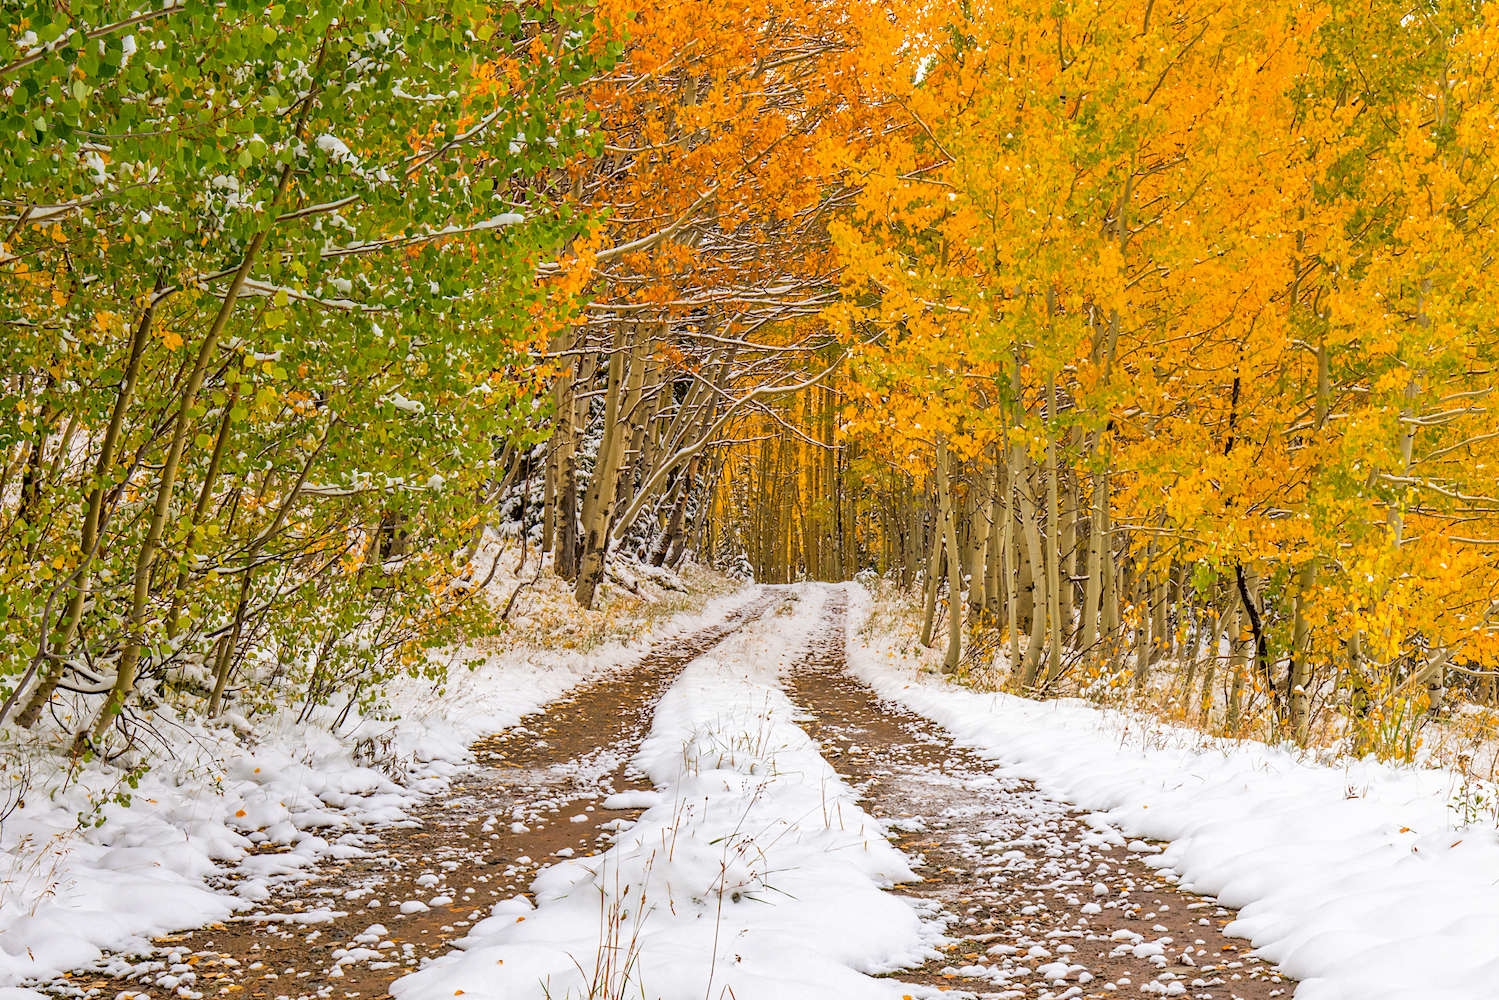 Snowy Fall Day, Image # 0696